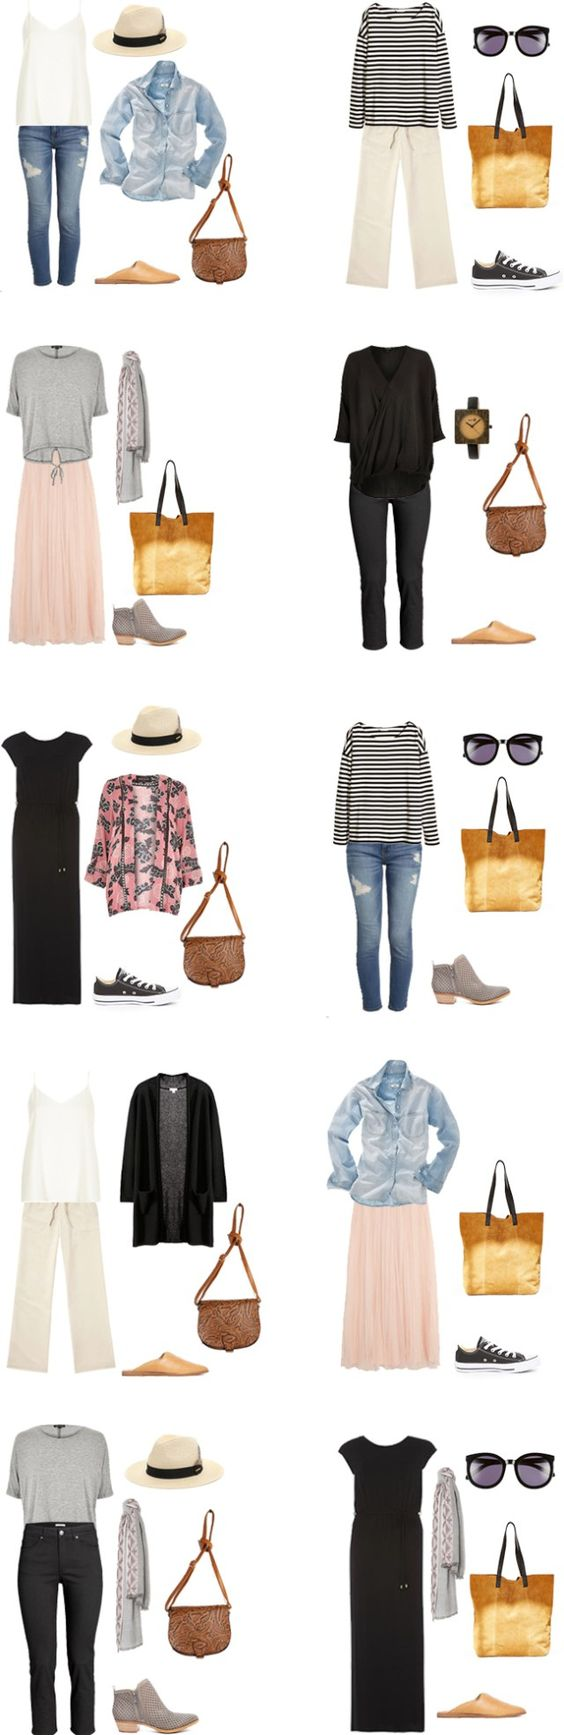 What to Wear in New Orleans Outfits 1-10 #travellight #packinglight #travel #traveltips